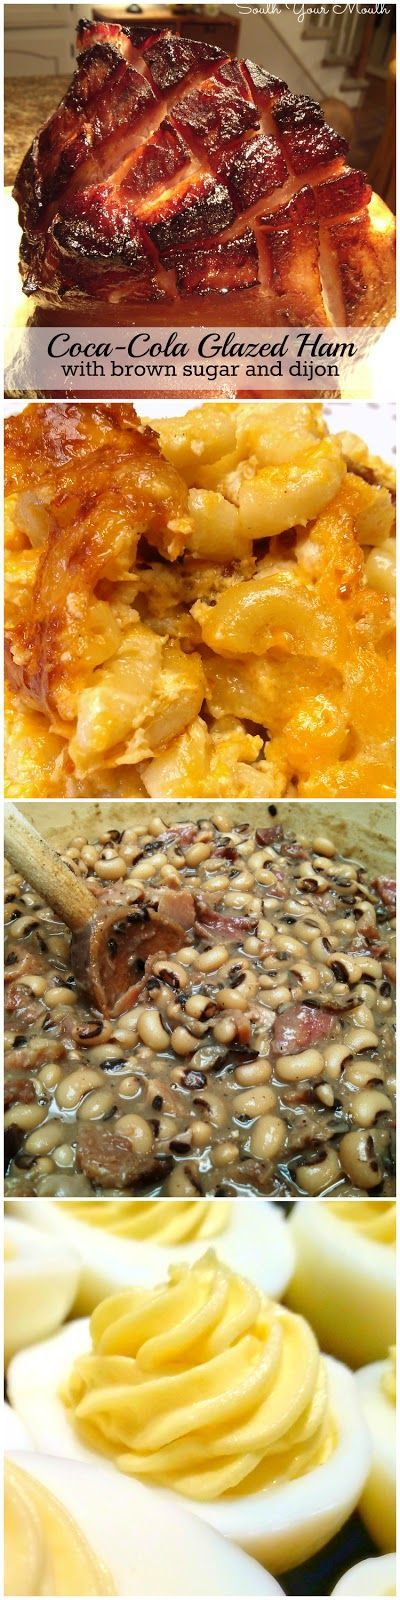 Southern Christmas Dinner Recipes Discovery, Thanksgiving and Food